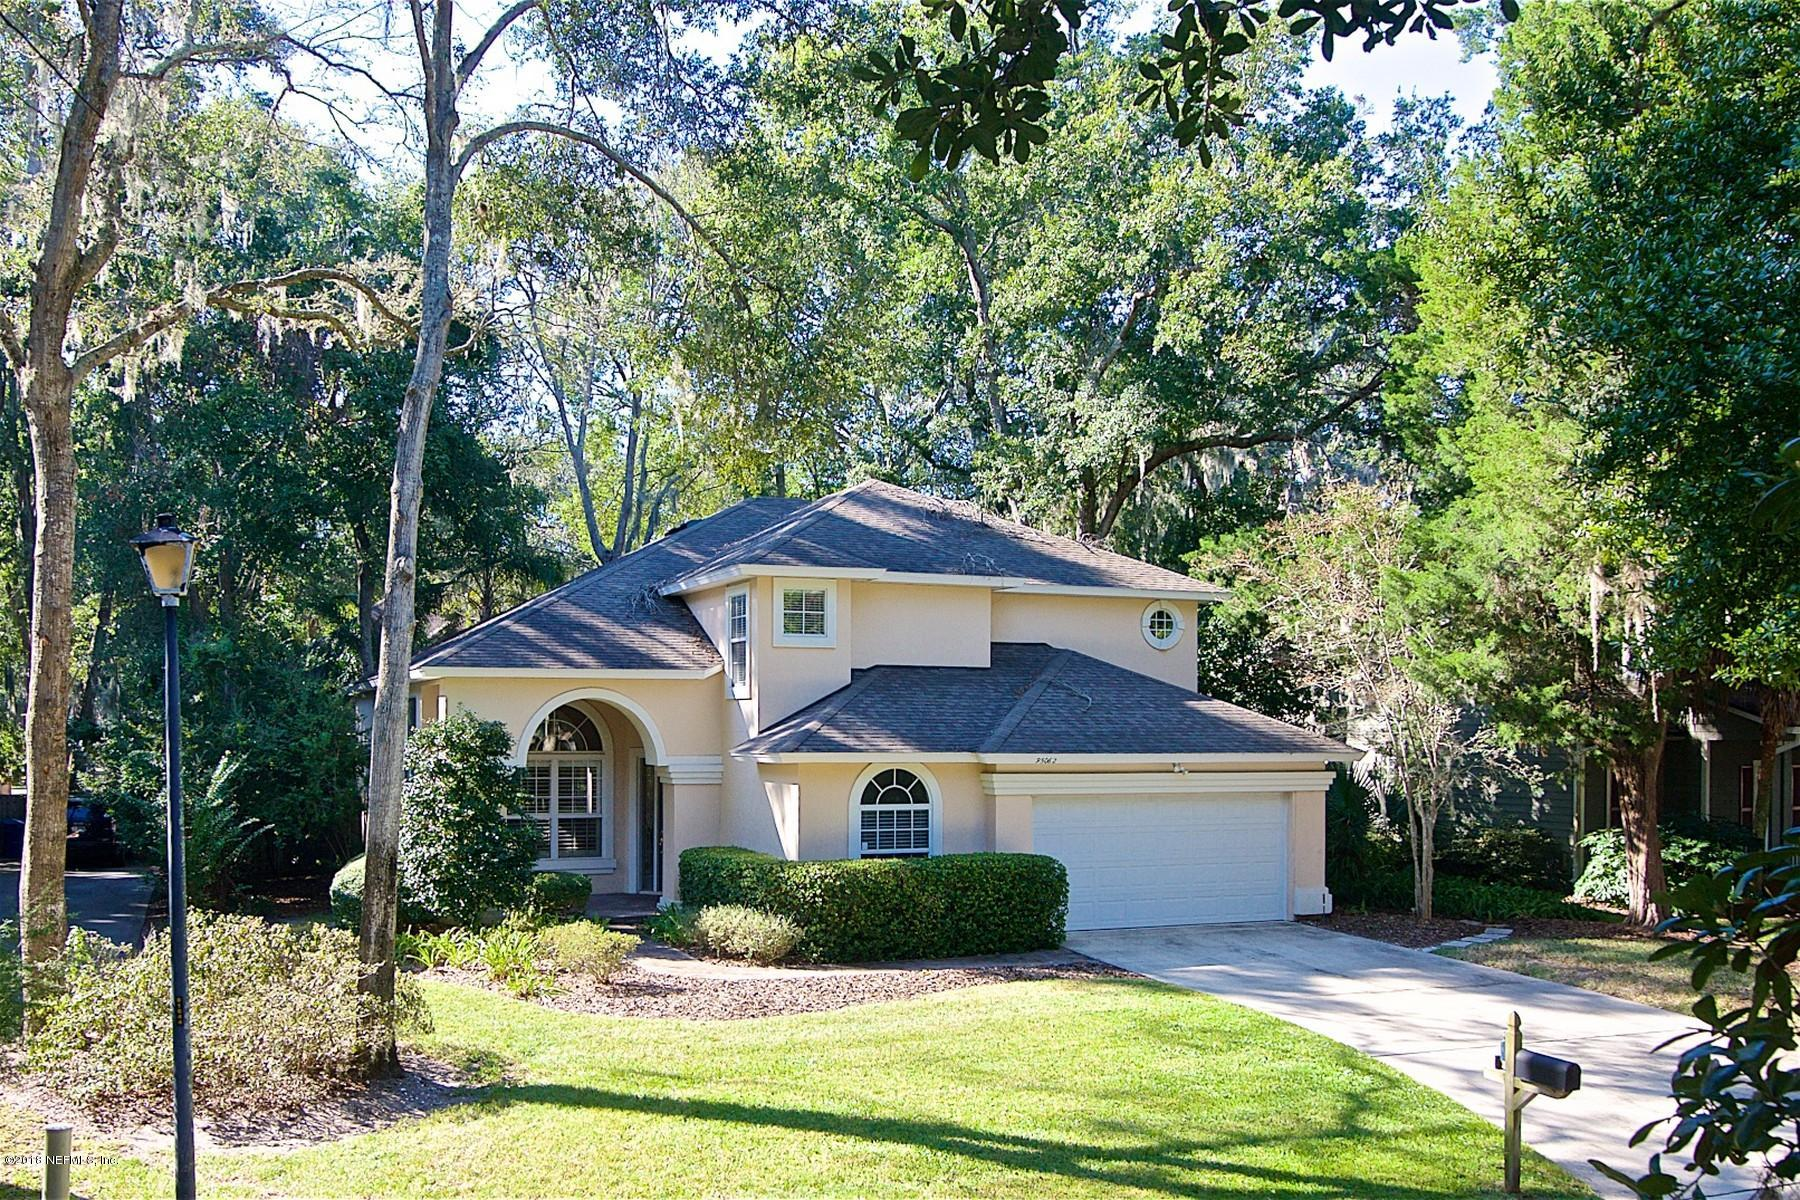 95062 MACKINAS, FERNANDINA BEACH, FLORIDA 32034, 4 Bedrooms Bedrooms, ,3 BathroomsBathrooms,Residential - single family,For sale,MACKINAS,965299